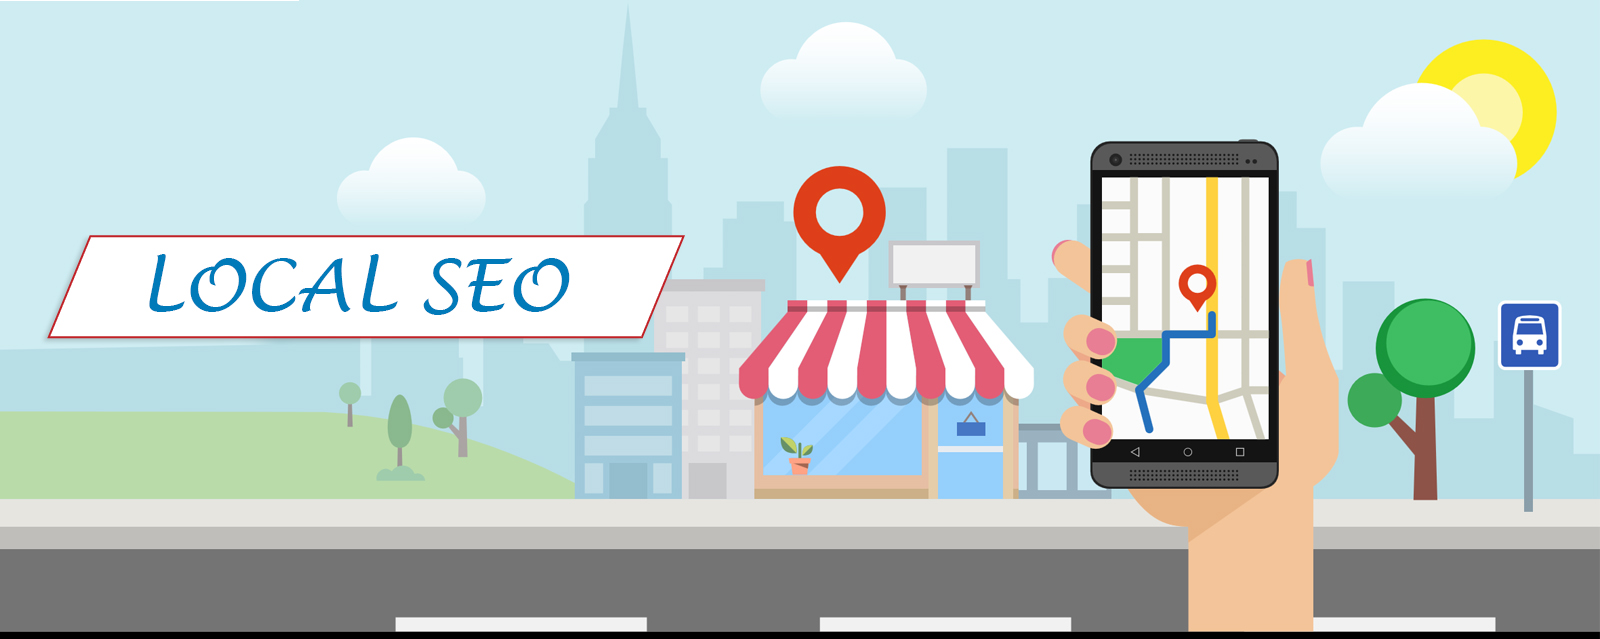 Google My Business Local Map Top Ranking